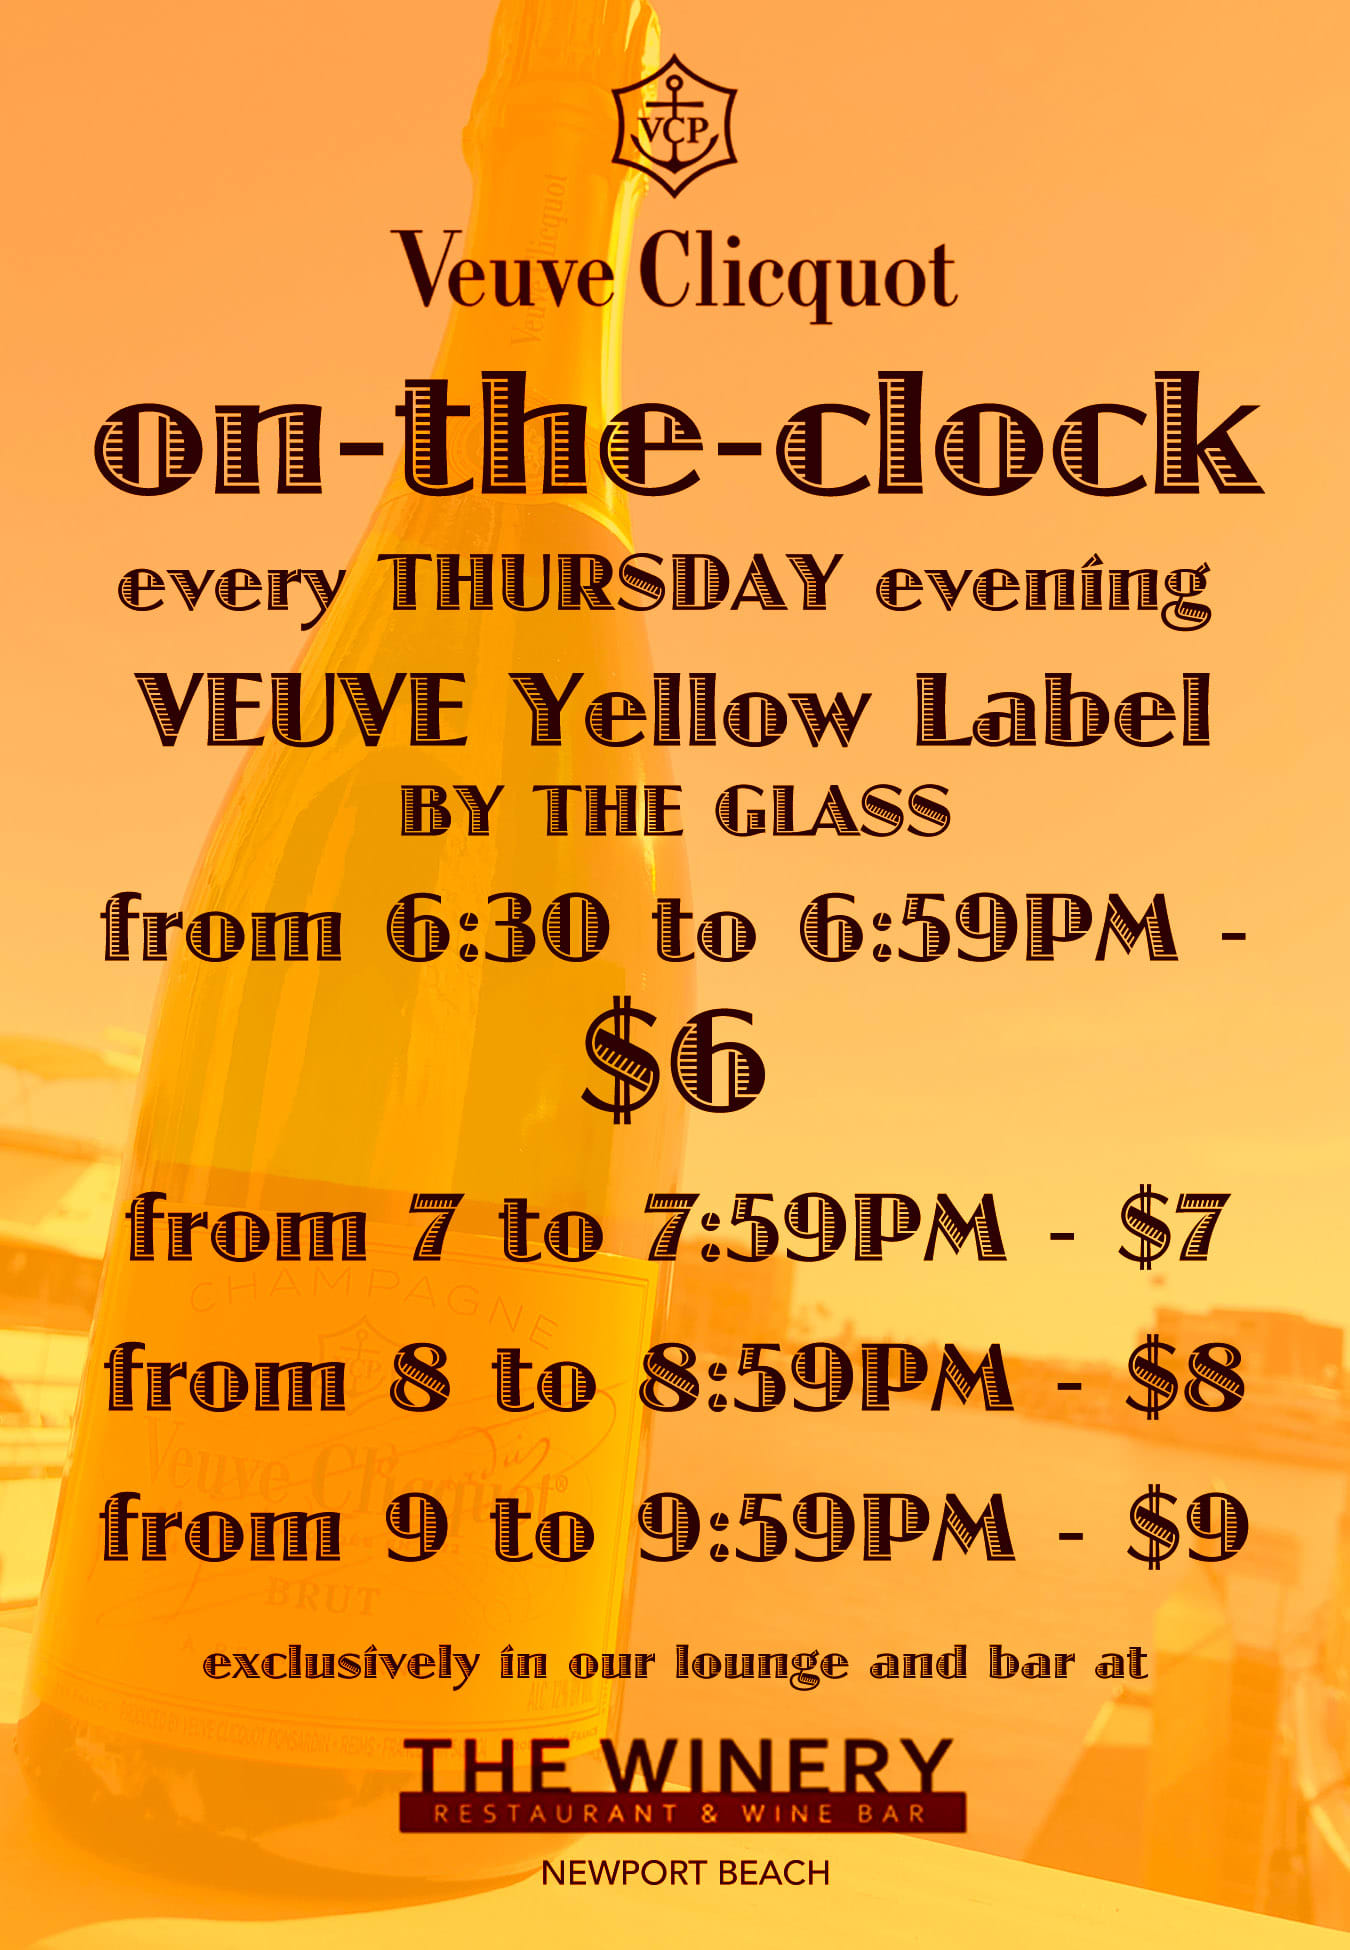 on the clock every thursday starting at 6pm, veuve yellow label by the glass.  from 6 - 6:59 pm $6, from 7 to 7:59 pm $7, from 8 to 8:59 pm $8, from 9 to 9:59pm $9